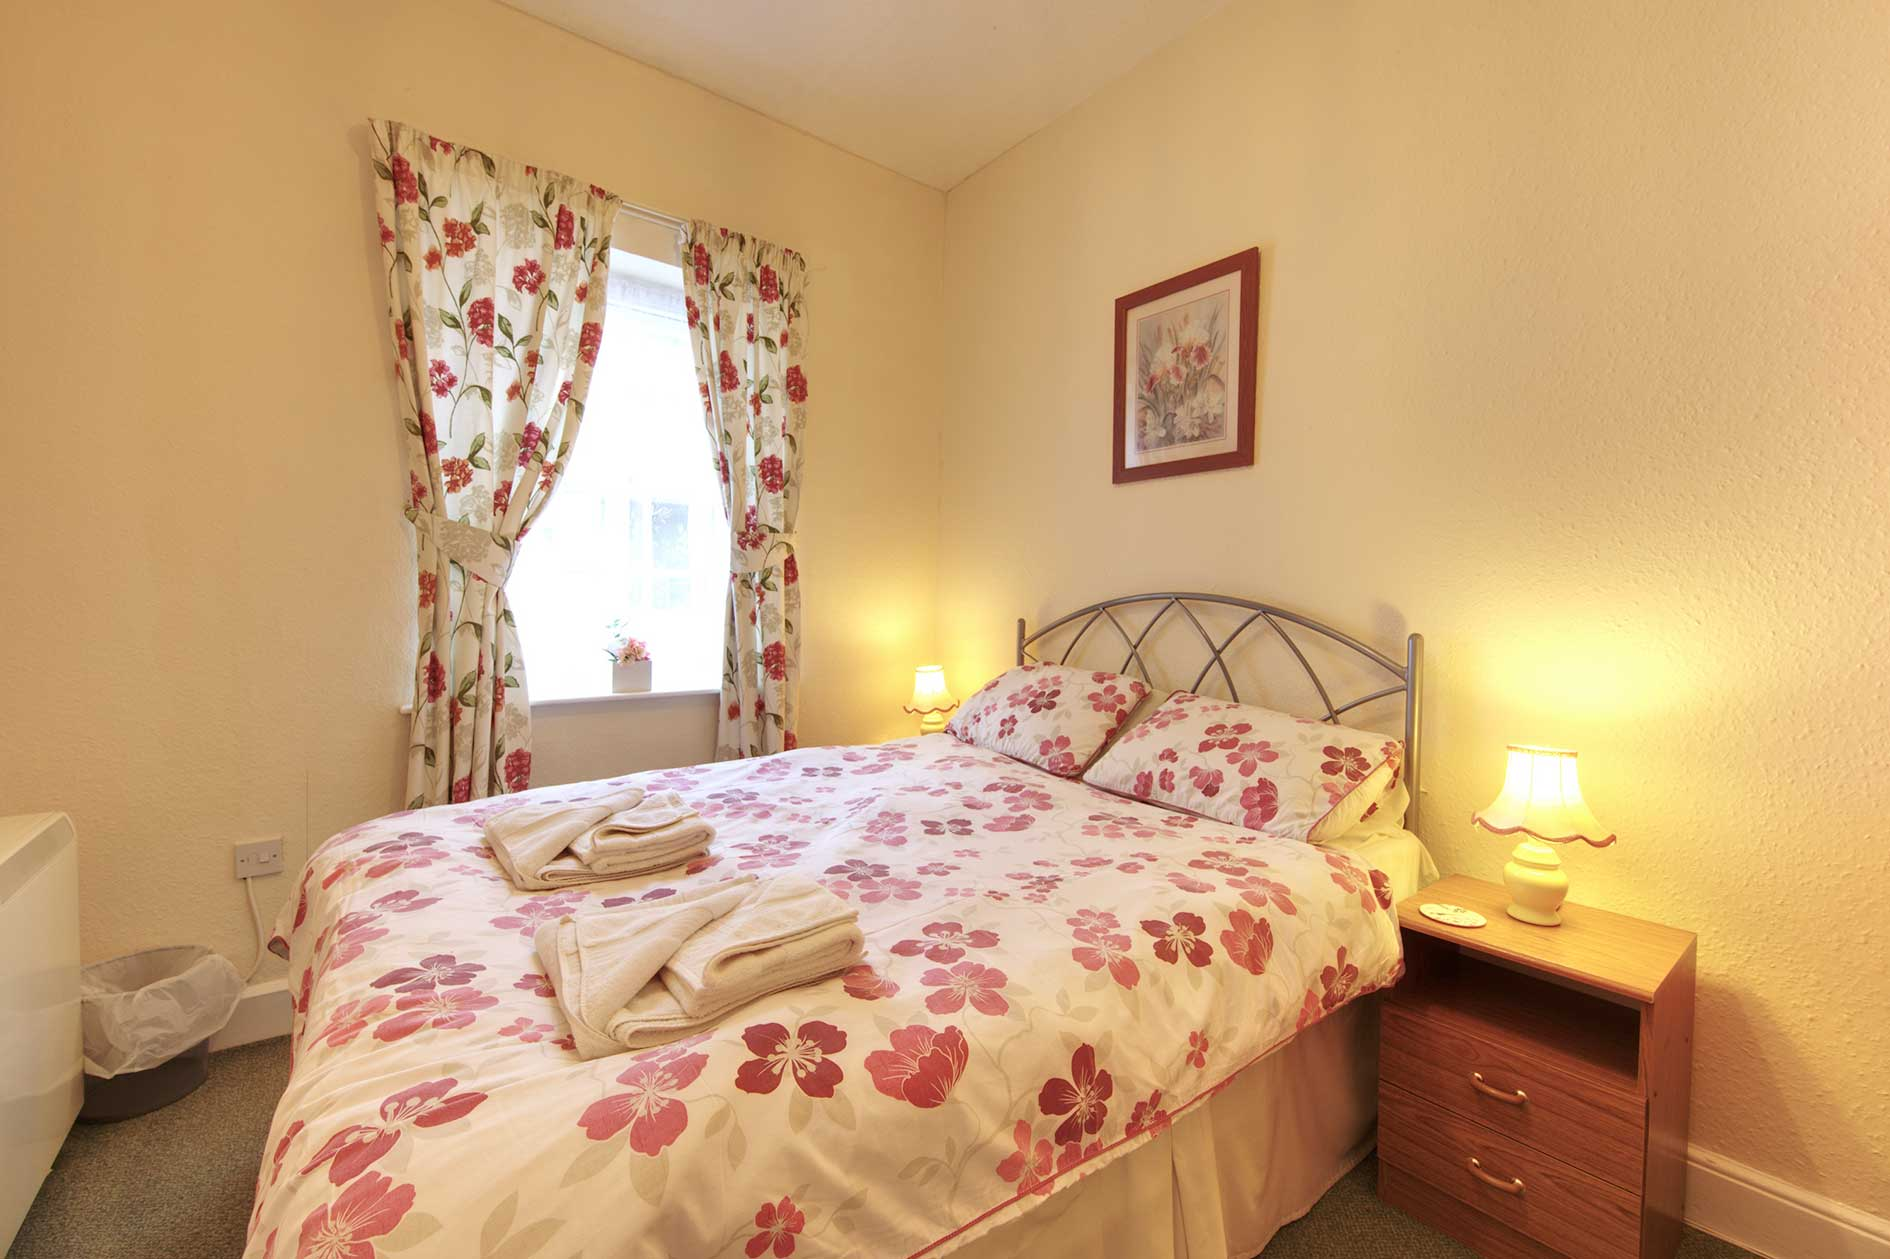 Lit Bedroom Containing A Double Bed With Red Flower Covers And Curtains Plus Wooden Furniture